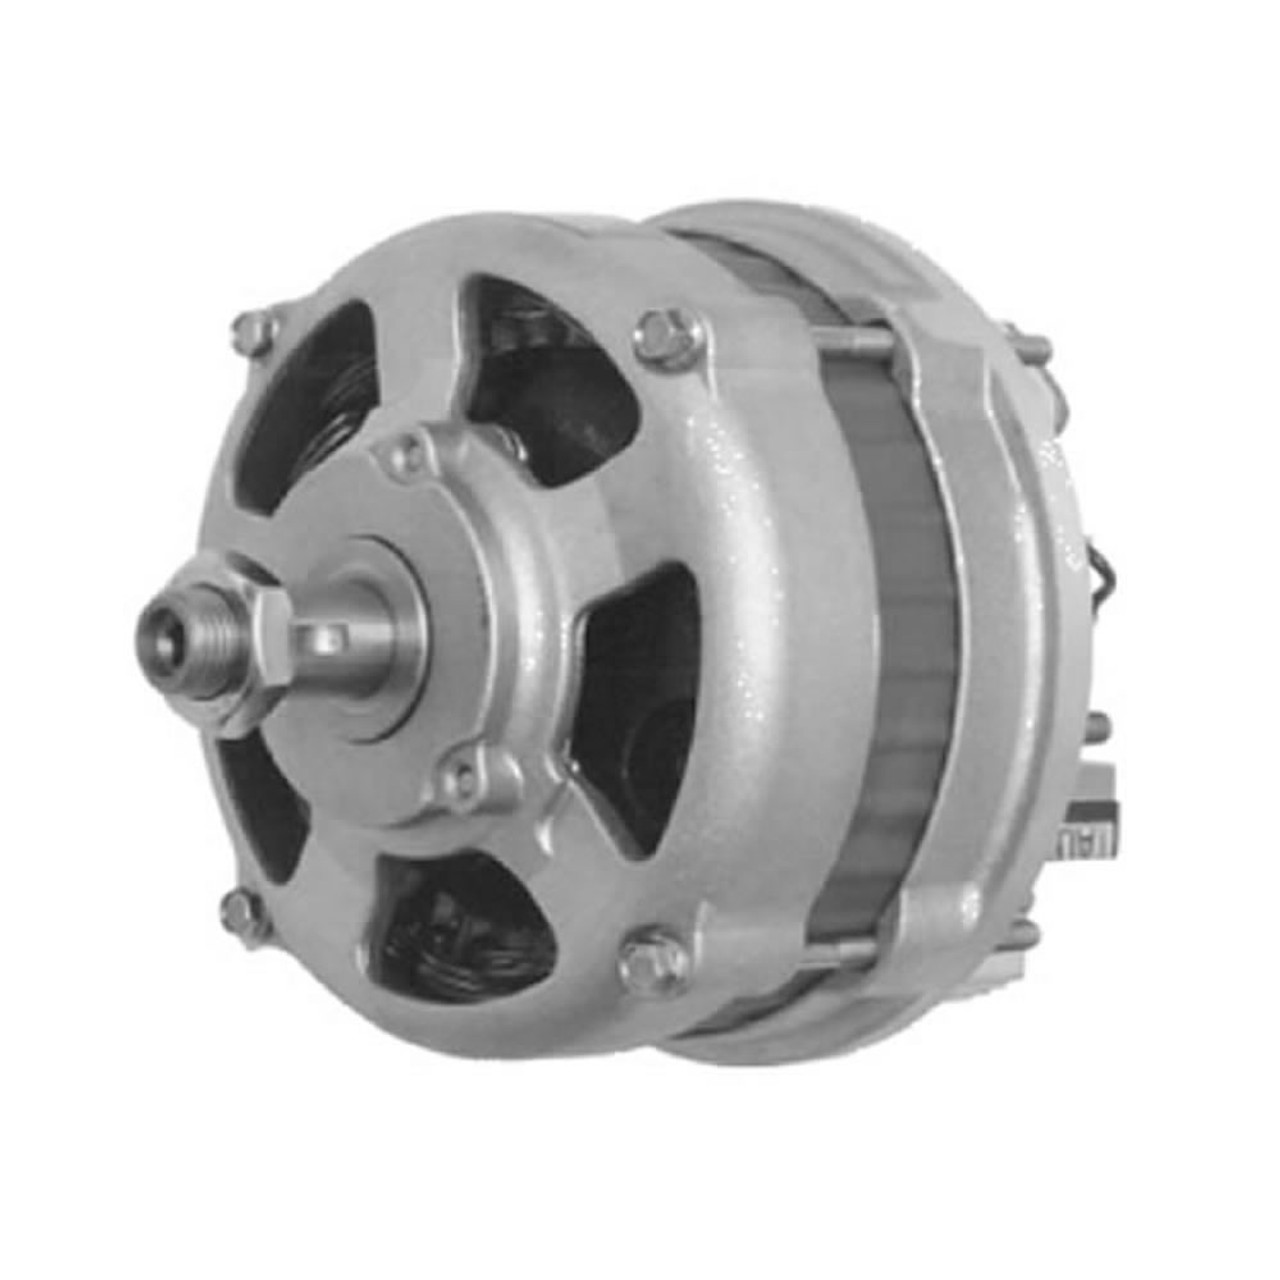 hight resolution of atlas crawler excavator 160lc letrika alternator mg111